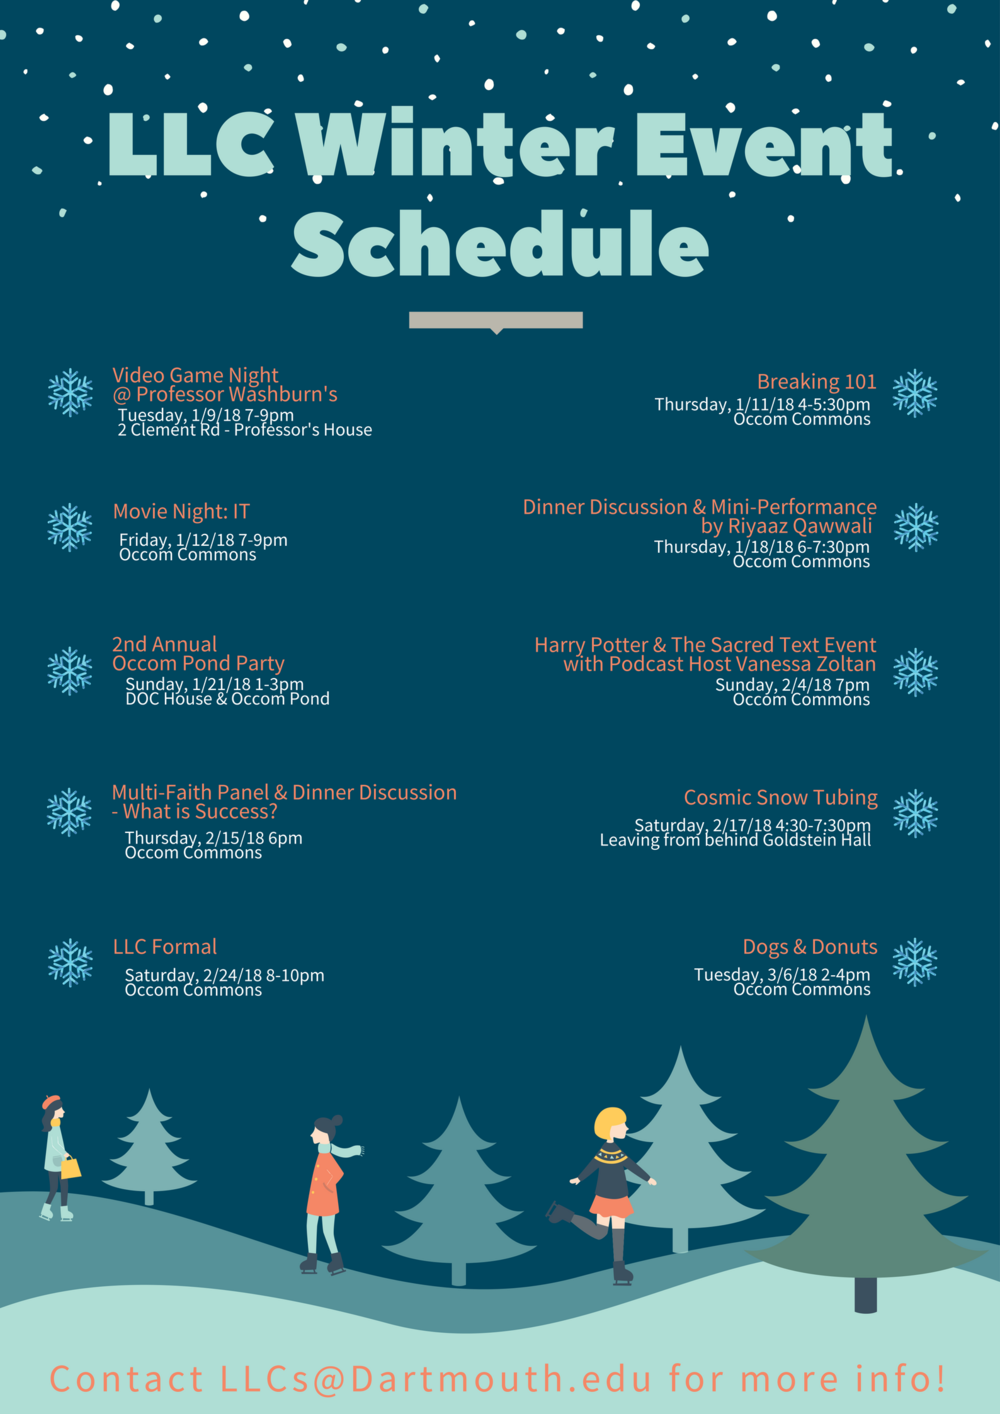 LLC Winter Event Schedule.png